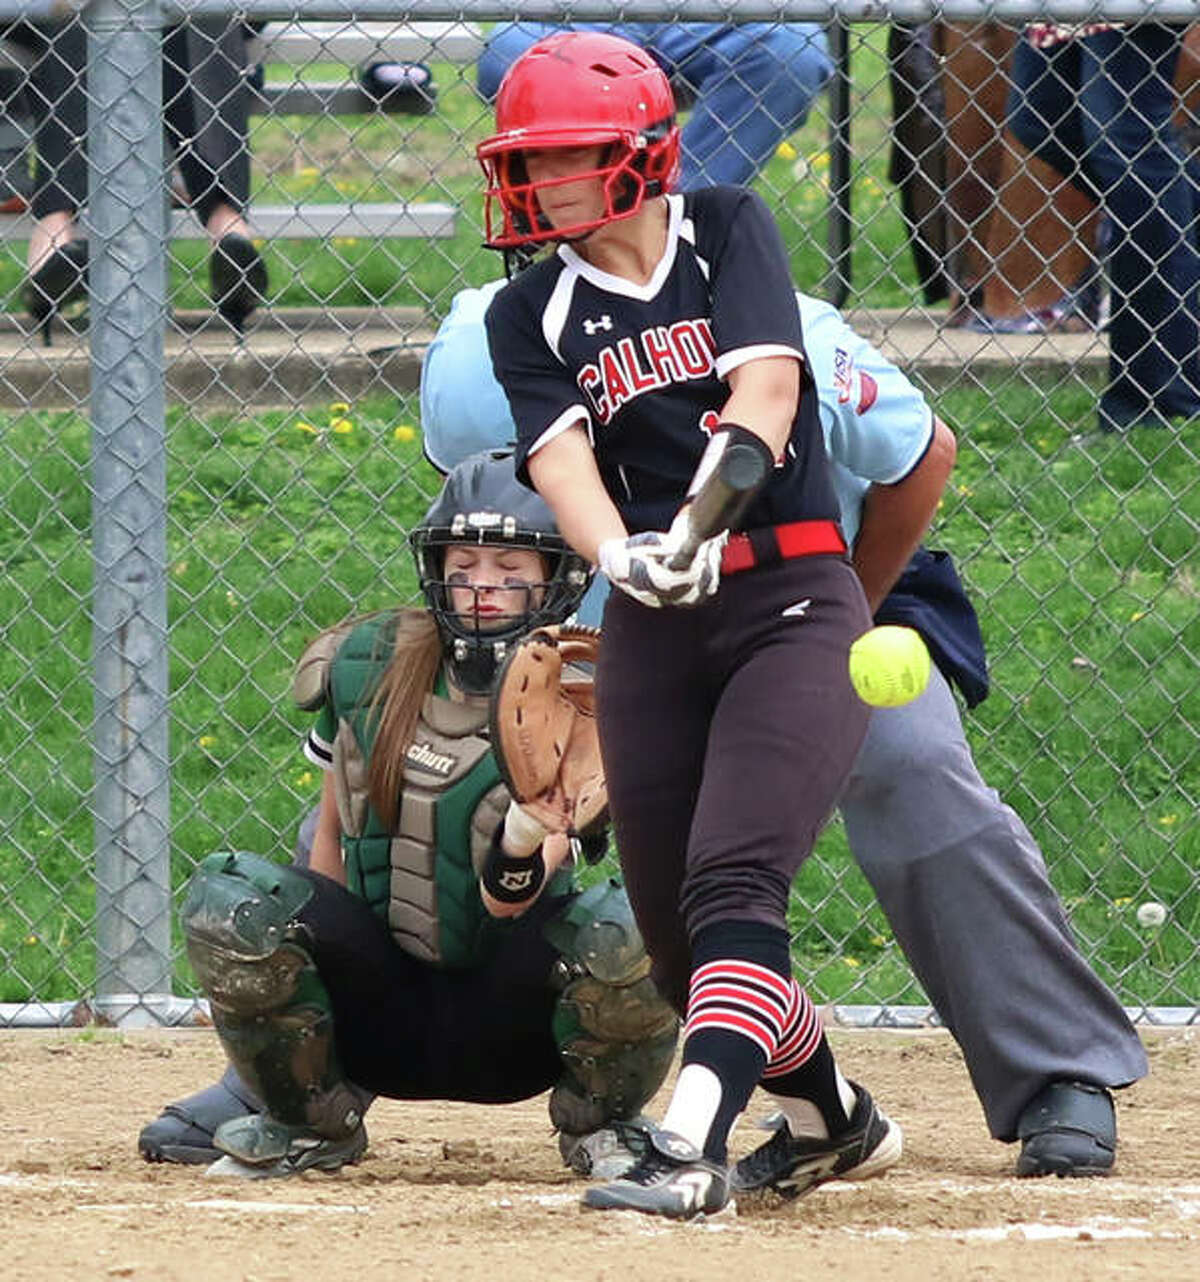 Calhoun's Mackenzie Cranmer makes contact while Carrollton catcher Kennedy Ruyle awaits the pitch during an April 25 game in Carrollton. Cranmer had two RBIs Friday in the Warriors' win at Jacksonville Routt.